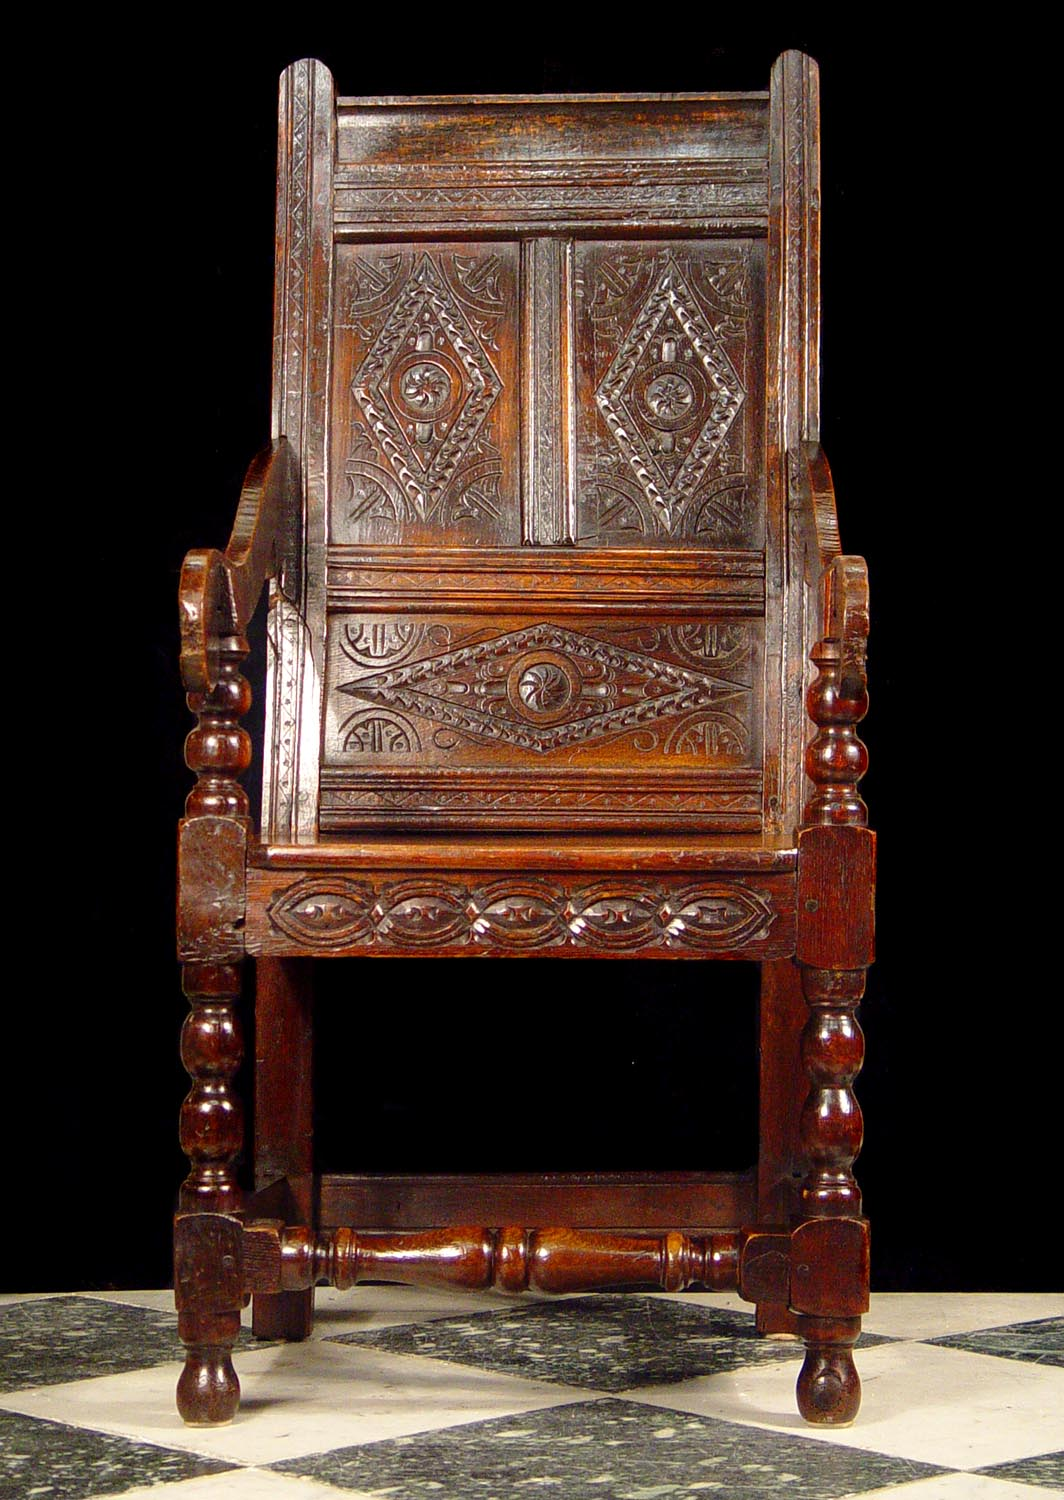 Antique old carved oak jacobean renaissance chair 17th century.